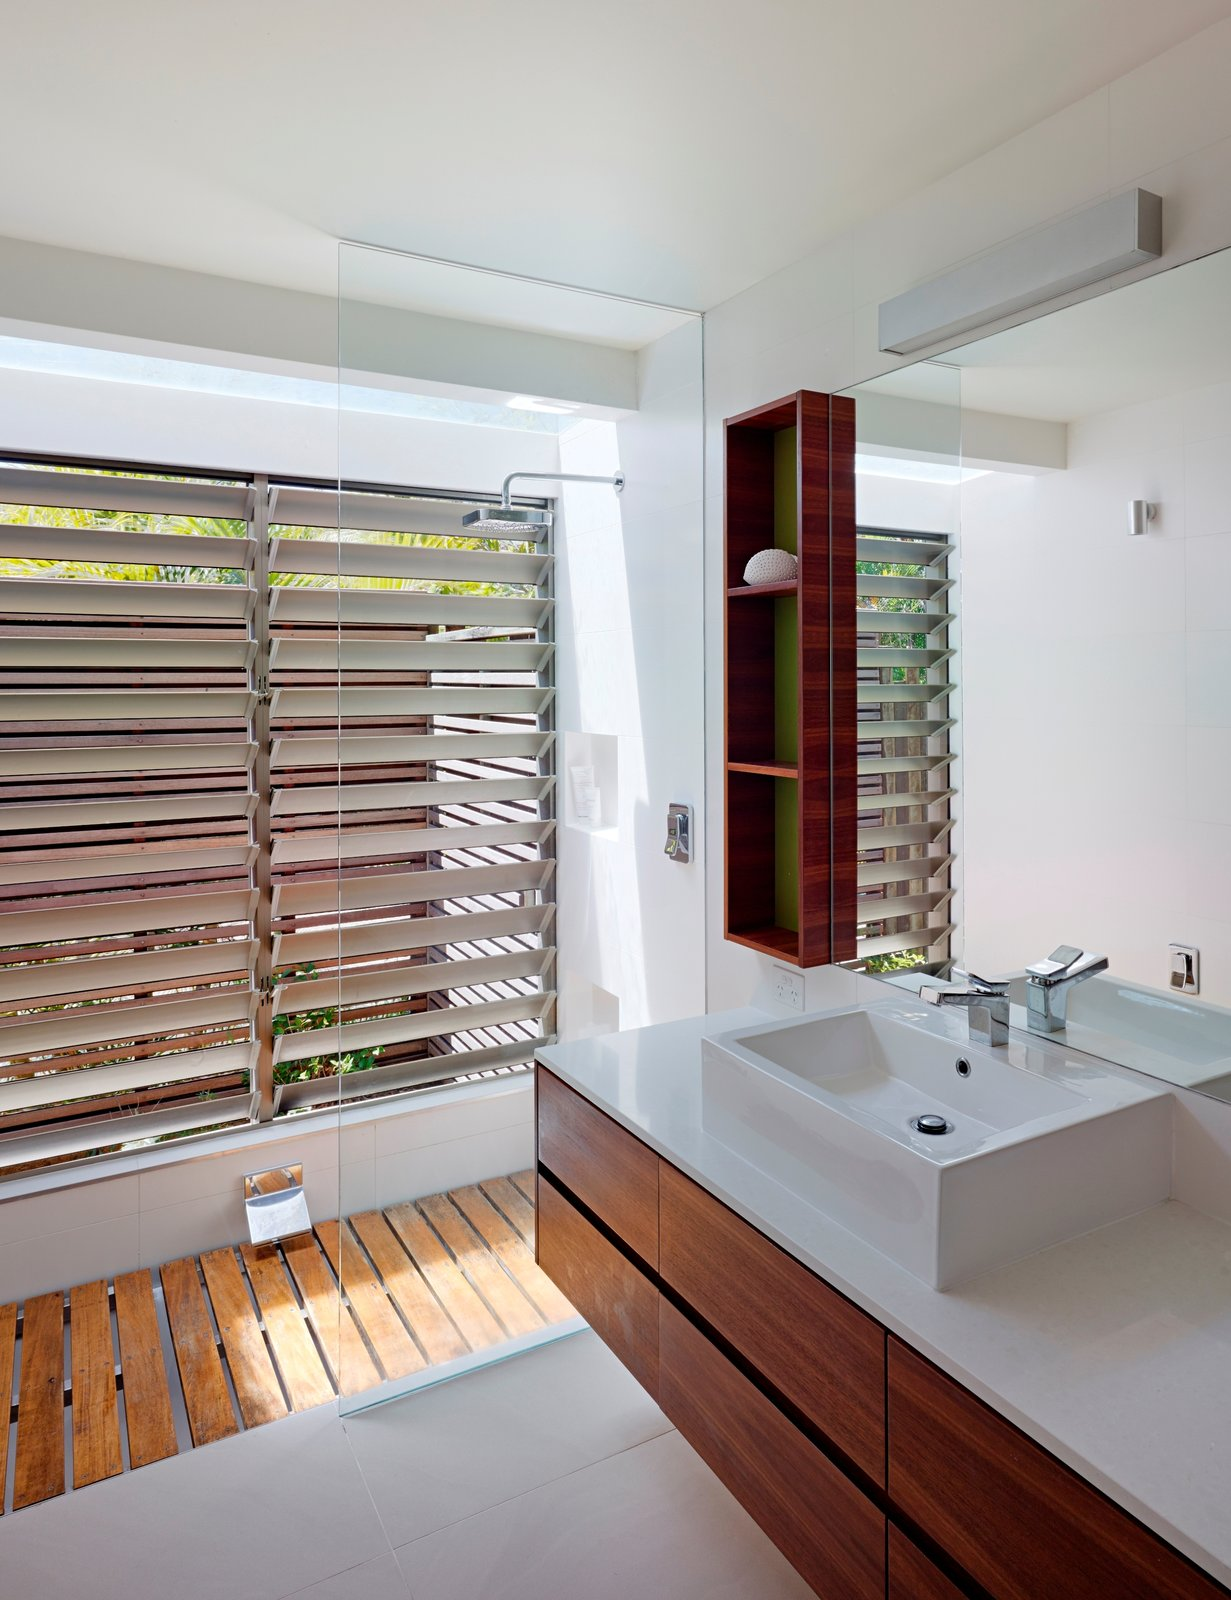 Bath Room, Granite Counter, Open Shower, Wall Lighting, and Vessel Sink  Photo 6 of 10 in Vegetation Cocoons This Tranquil Beach House in Australia